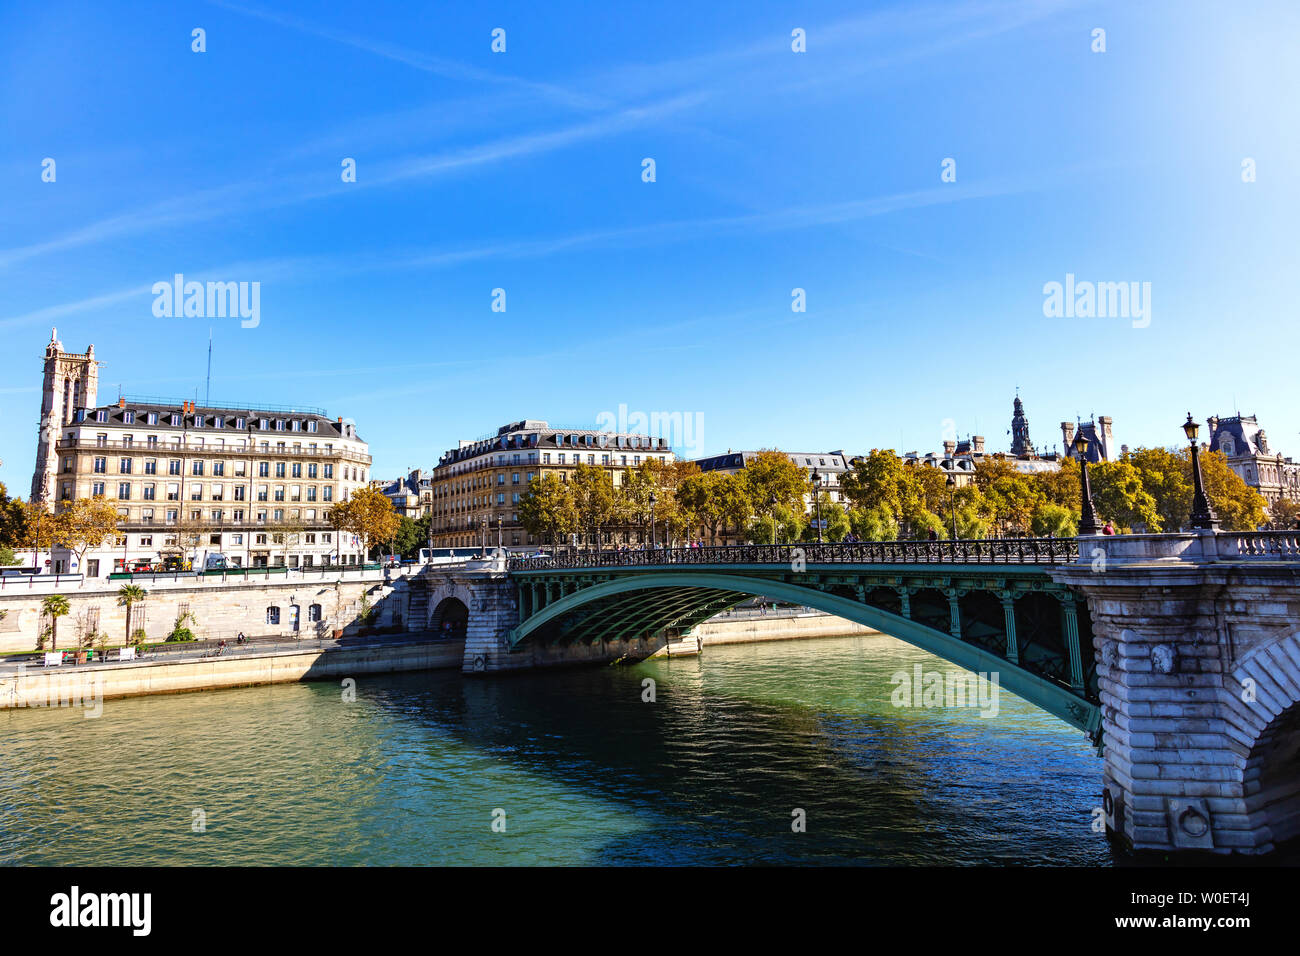 France, Paris, October 5, 2018: View on the bridge at the exchange, the Seine, the theater of the city and the tower Saint Jacques Stock Photo